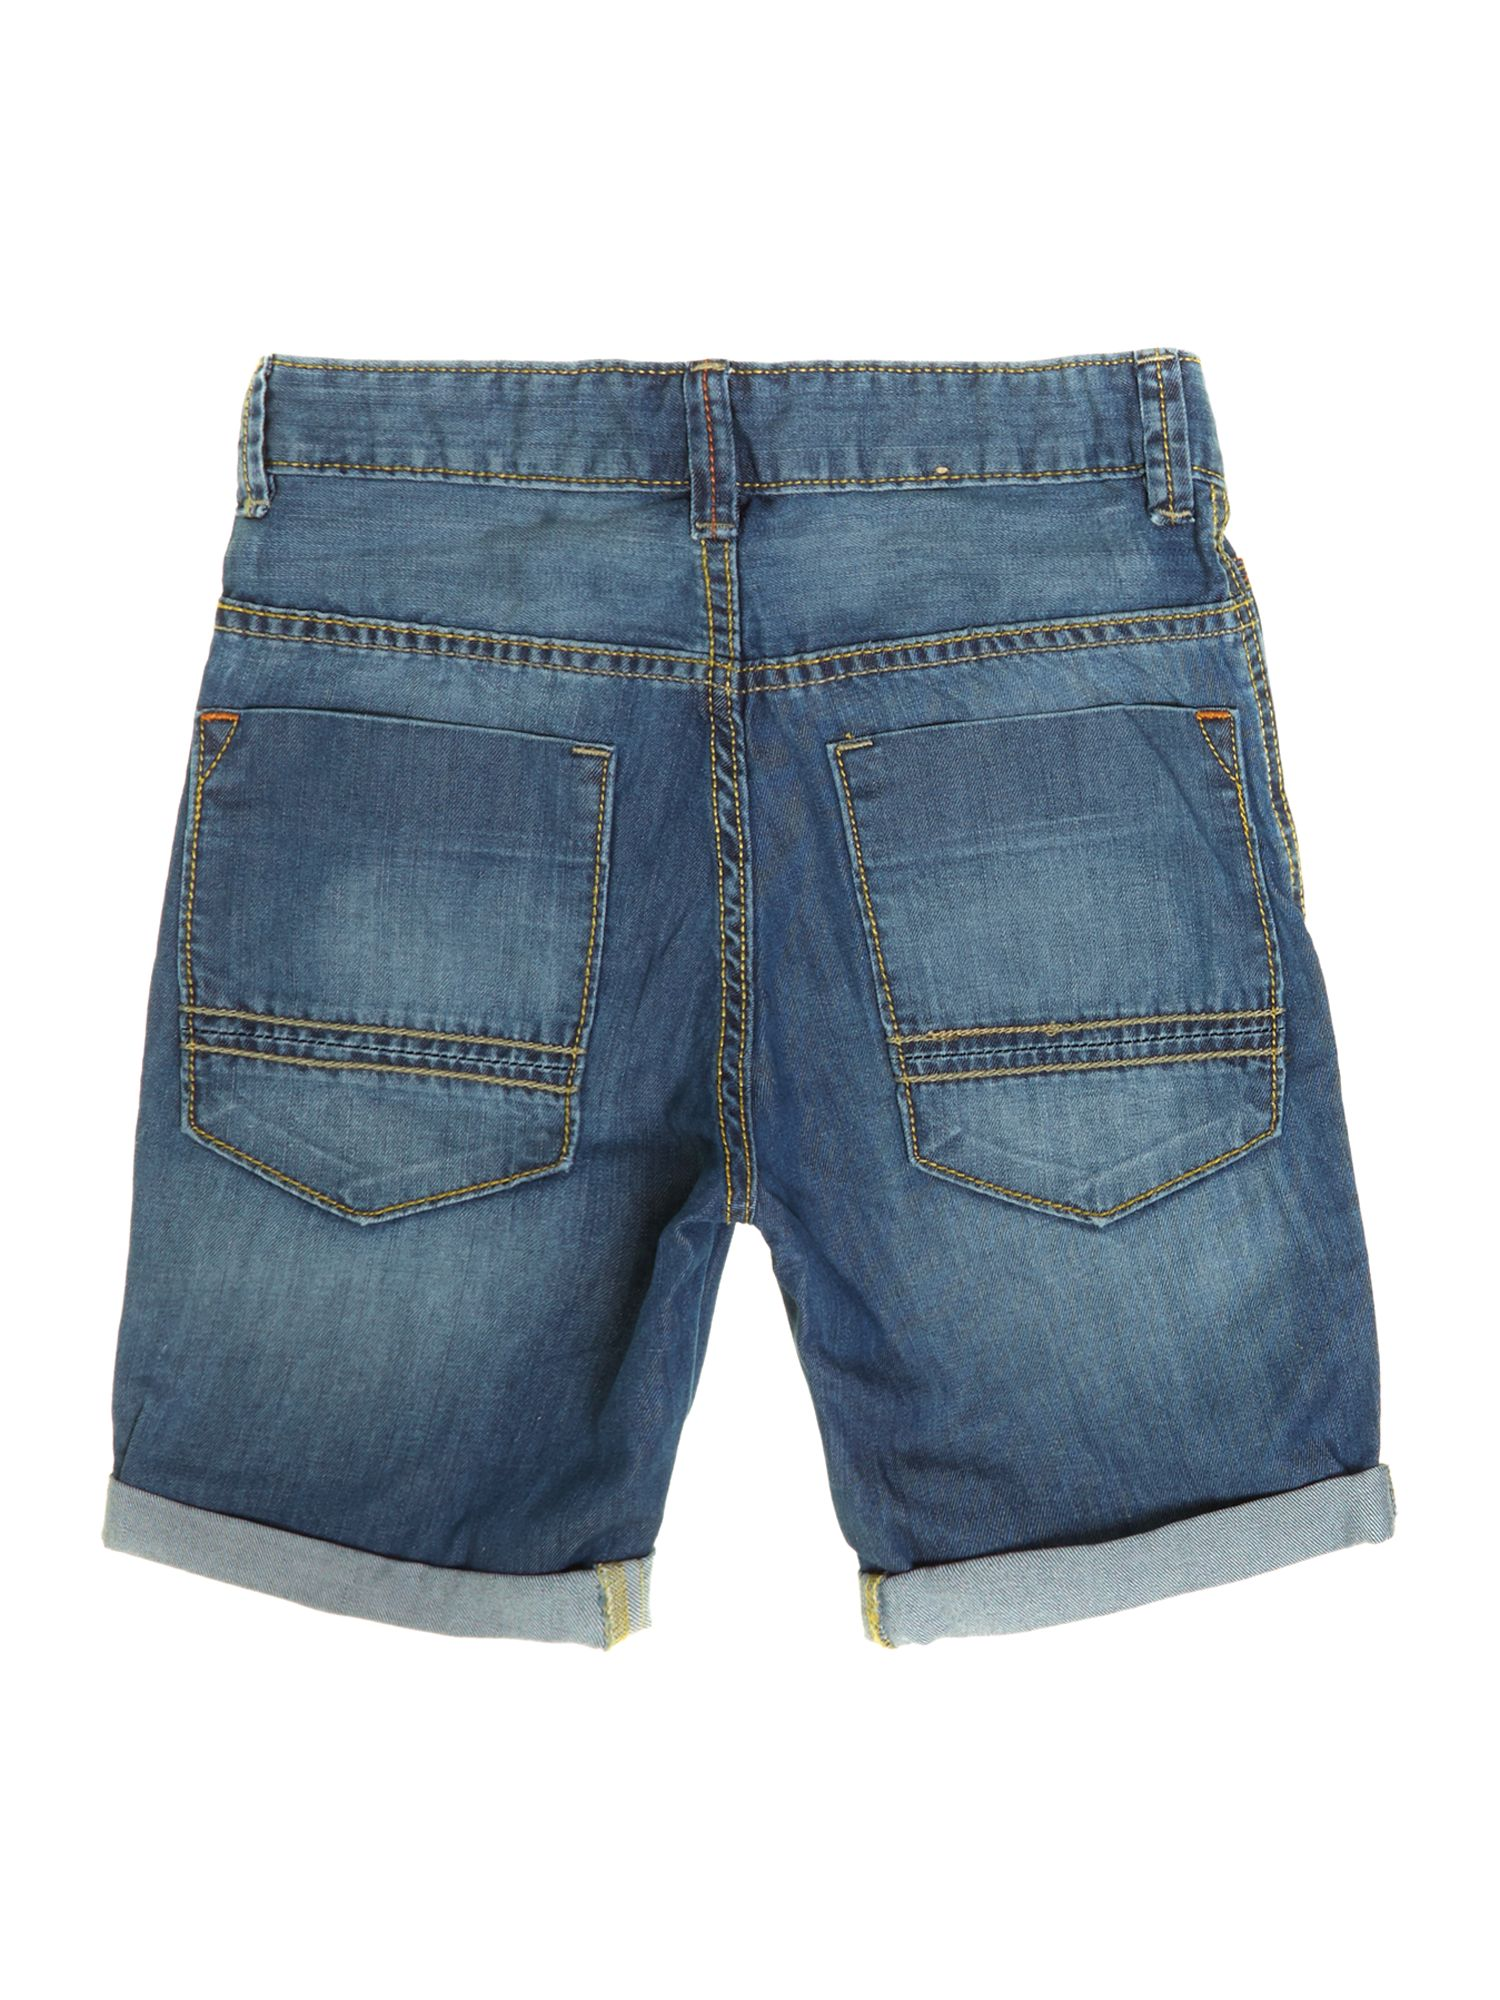 Boys denim turn up short